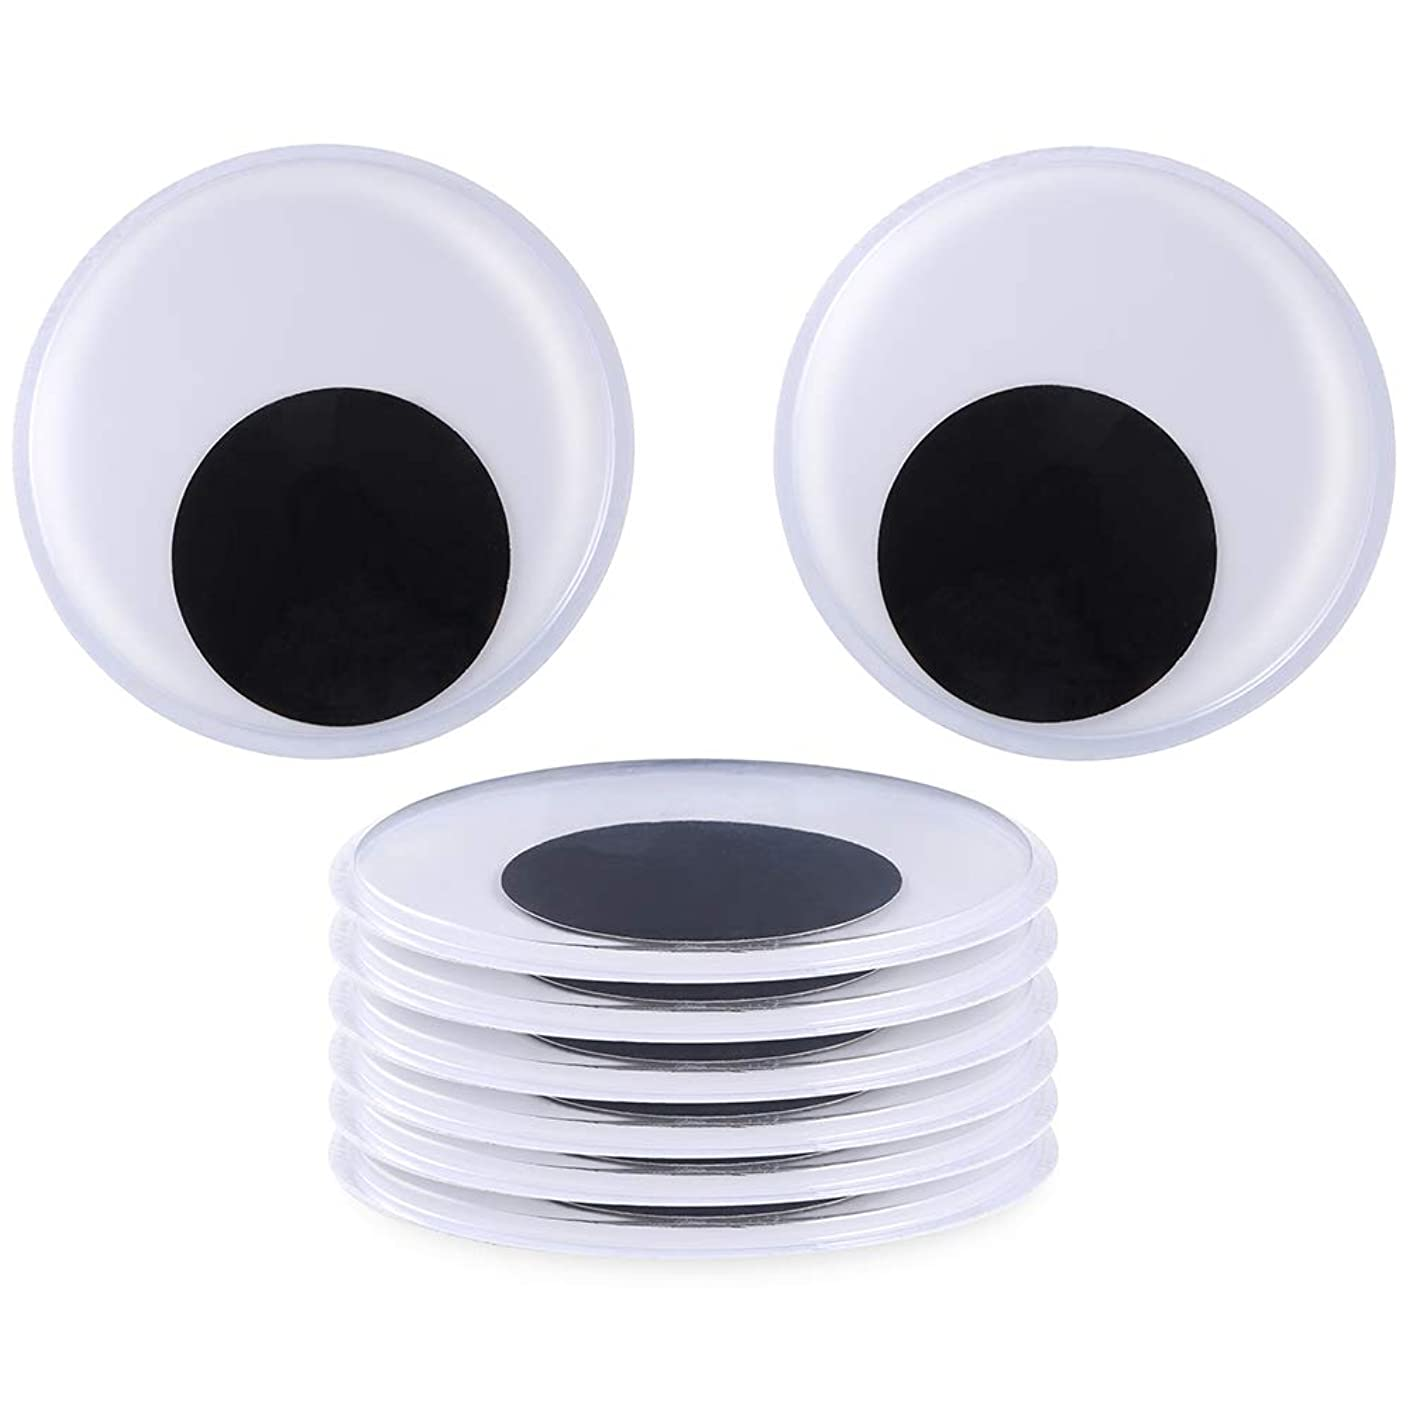 Sntieecr 8 Pack 5.1 Inch(13 cm) Large Wiggle Googly Eyes?with Self Adhesive for Craft Decorations